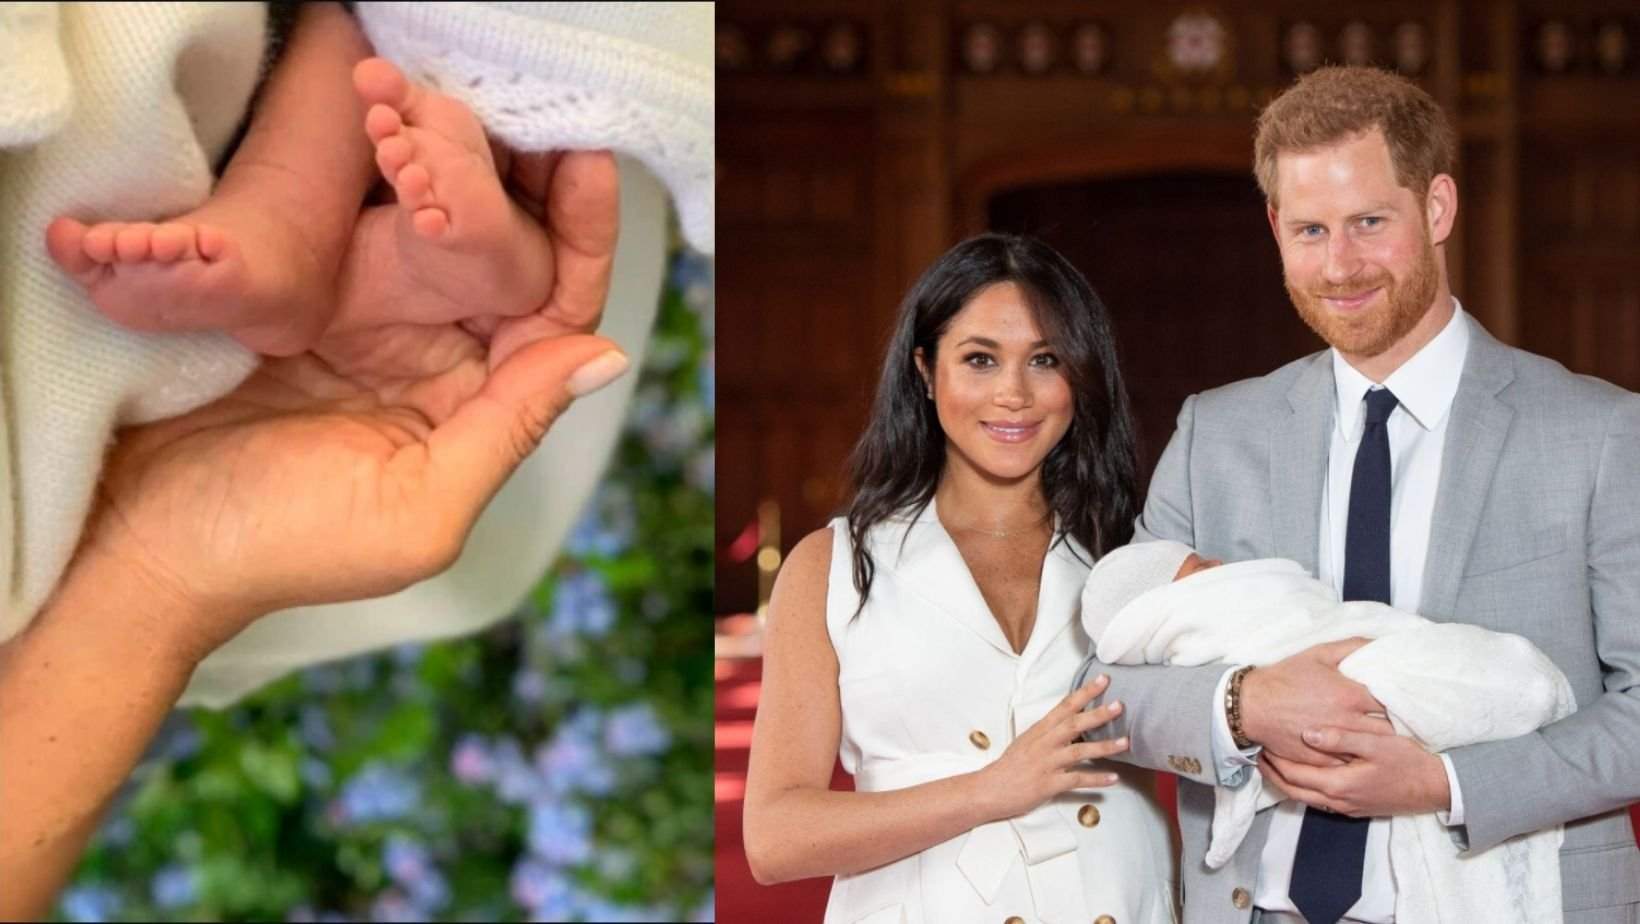 cover 3.jpg?resize=1200,630 - Meghan Markle Will Likely Share A Family Photo With Lilibet For Her 40th Birthday, Experts Claim